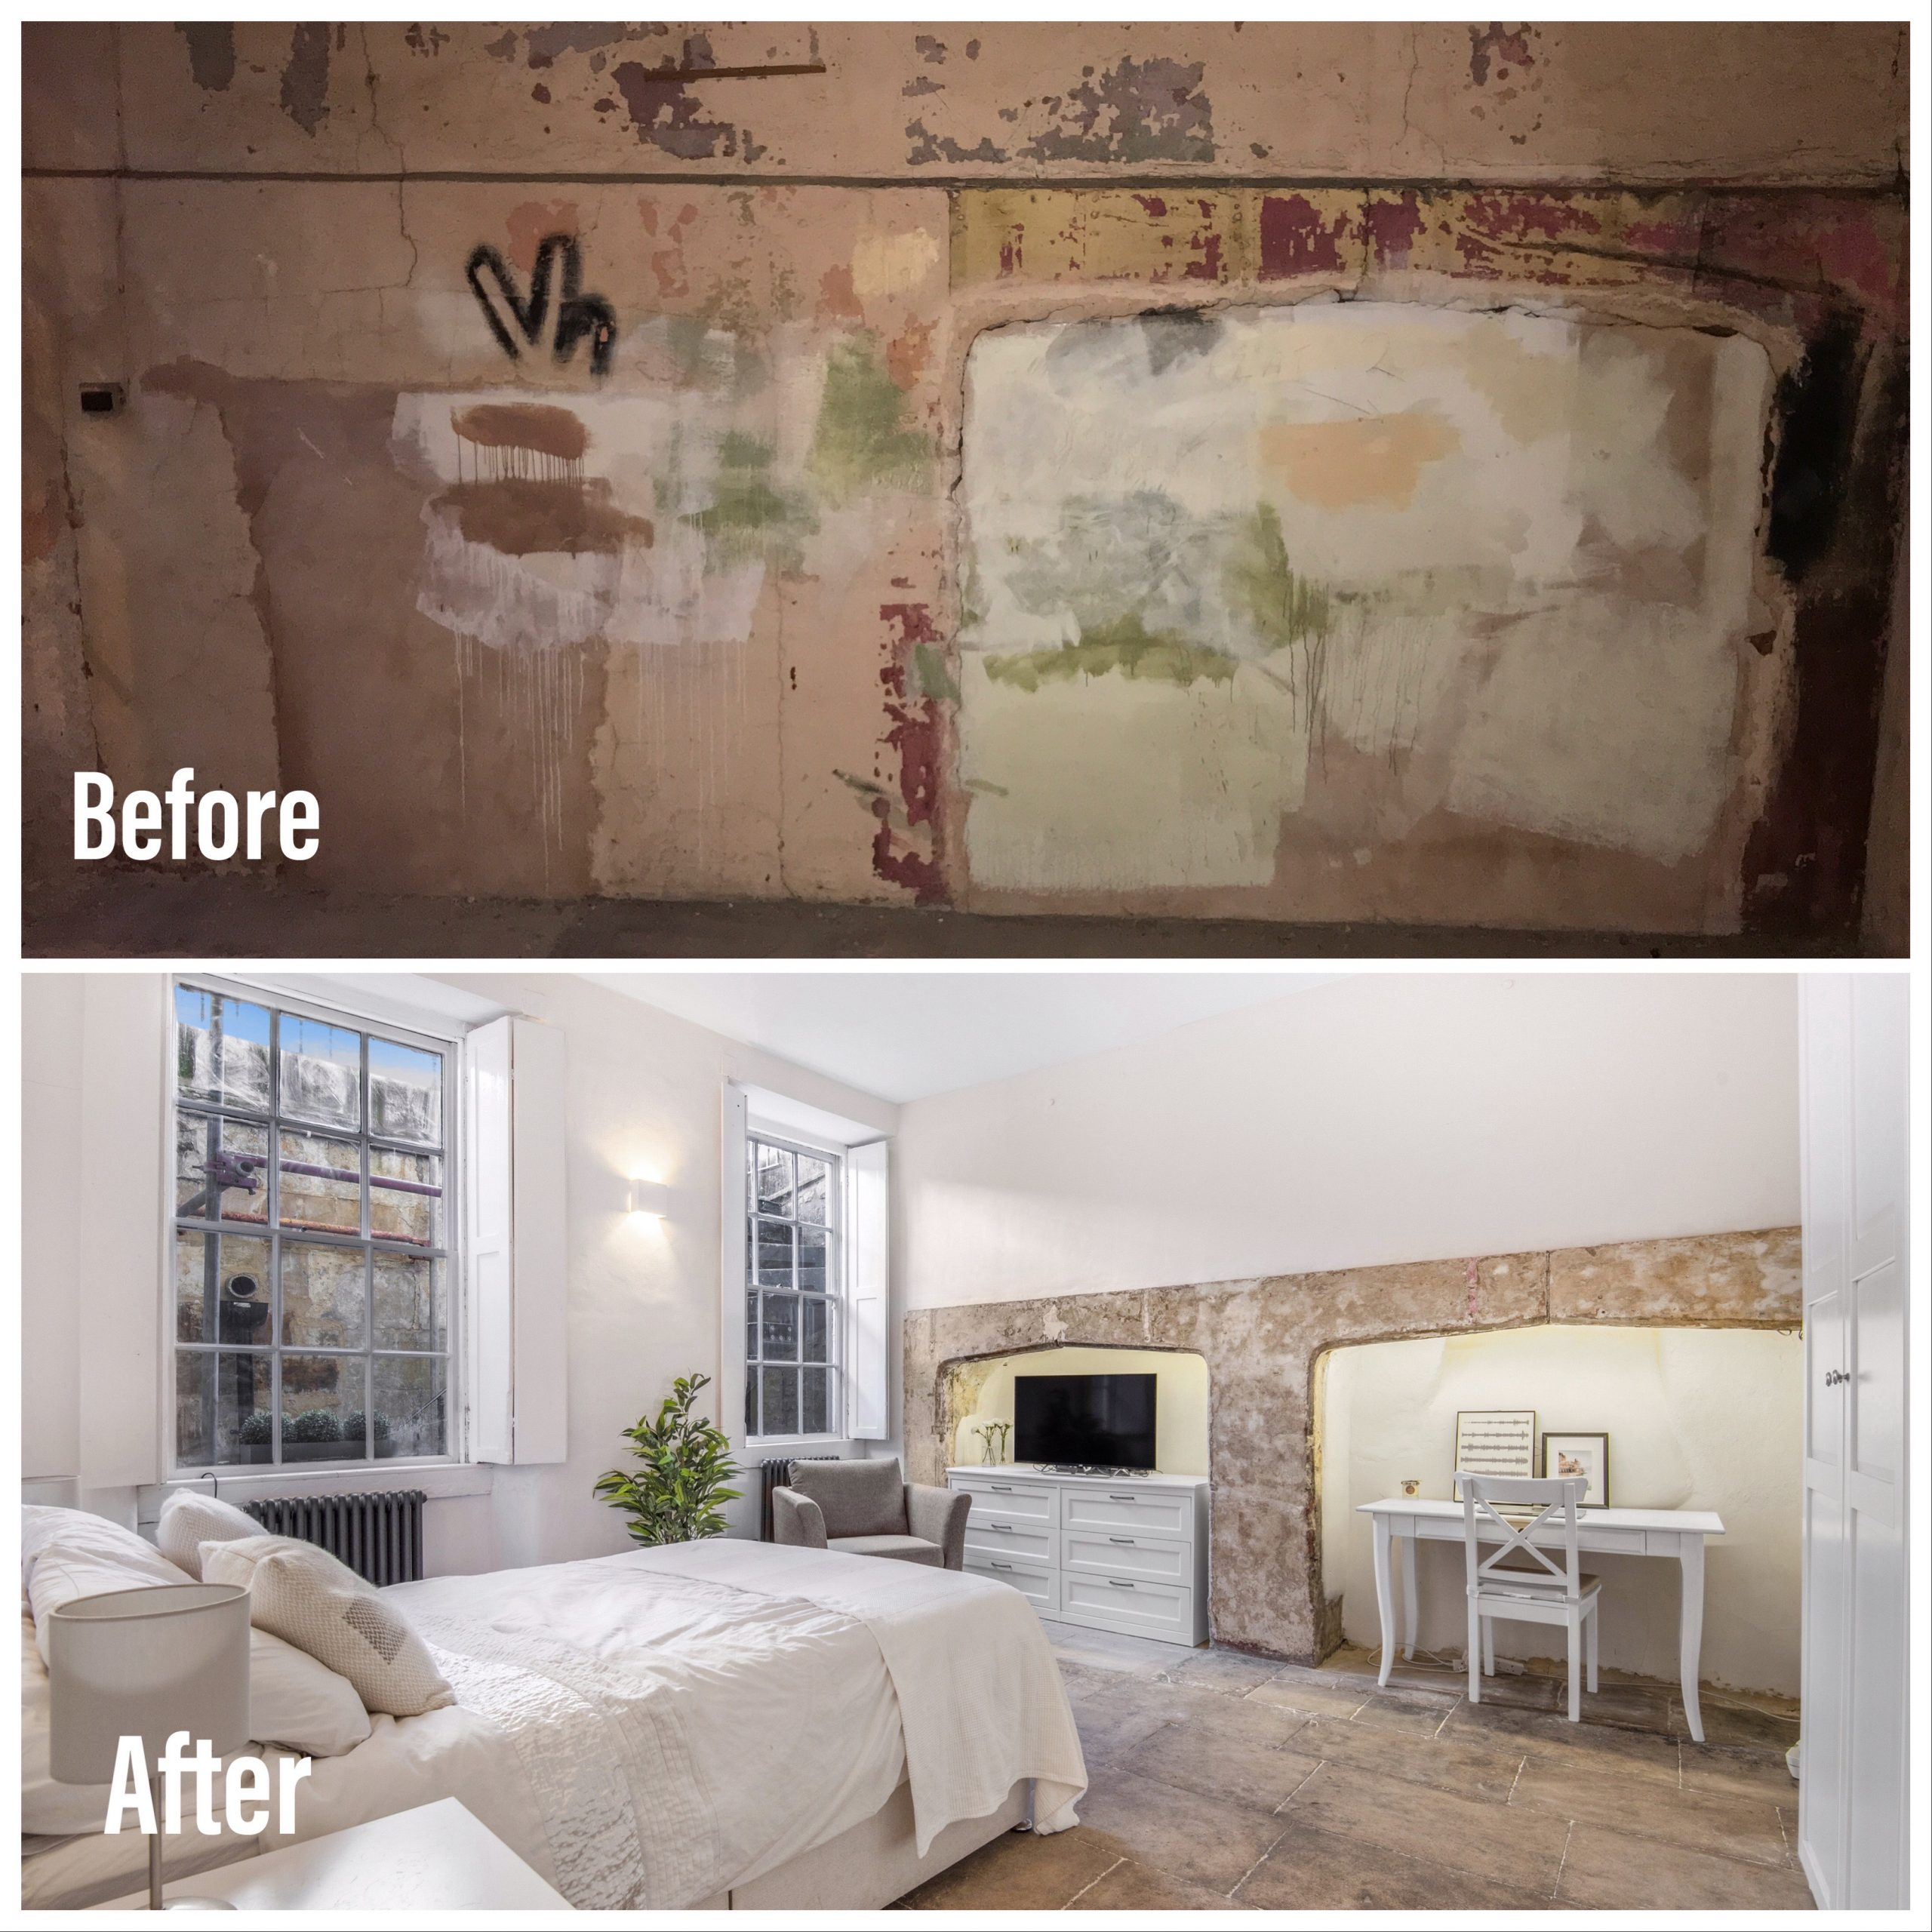 Old walls in this period home were plastered in lime to ensure they remained breathable